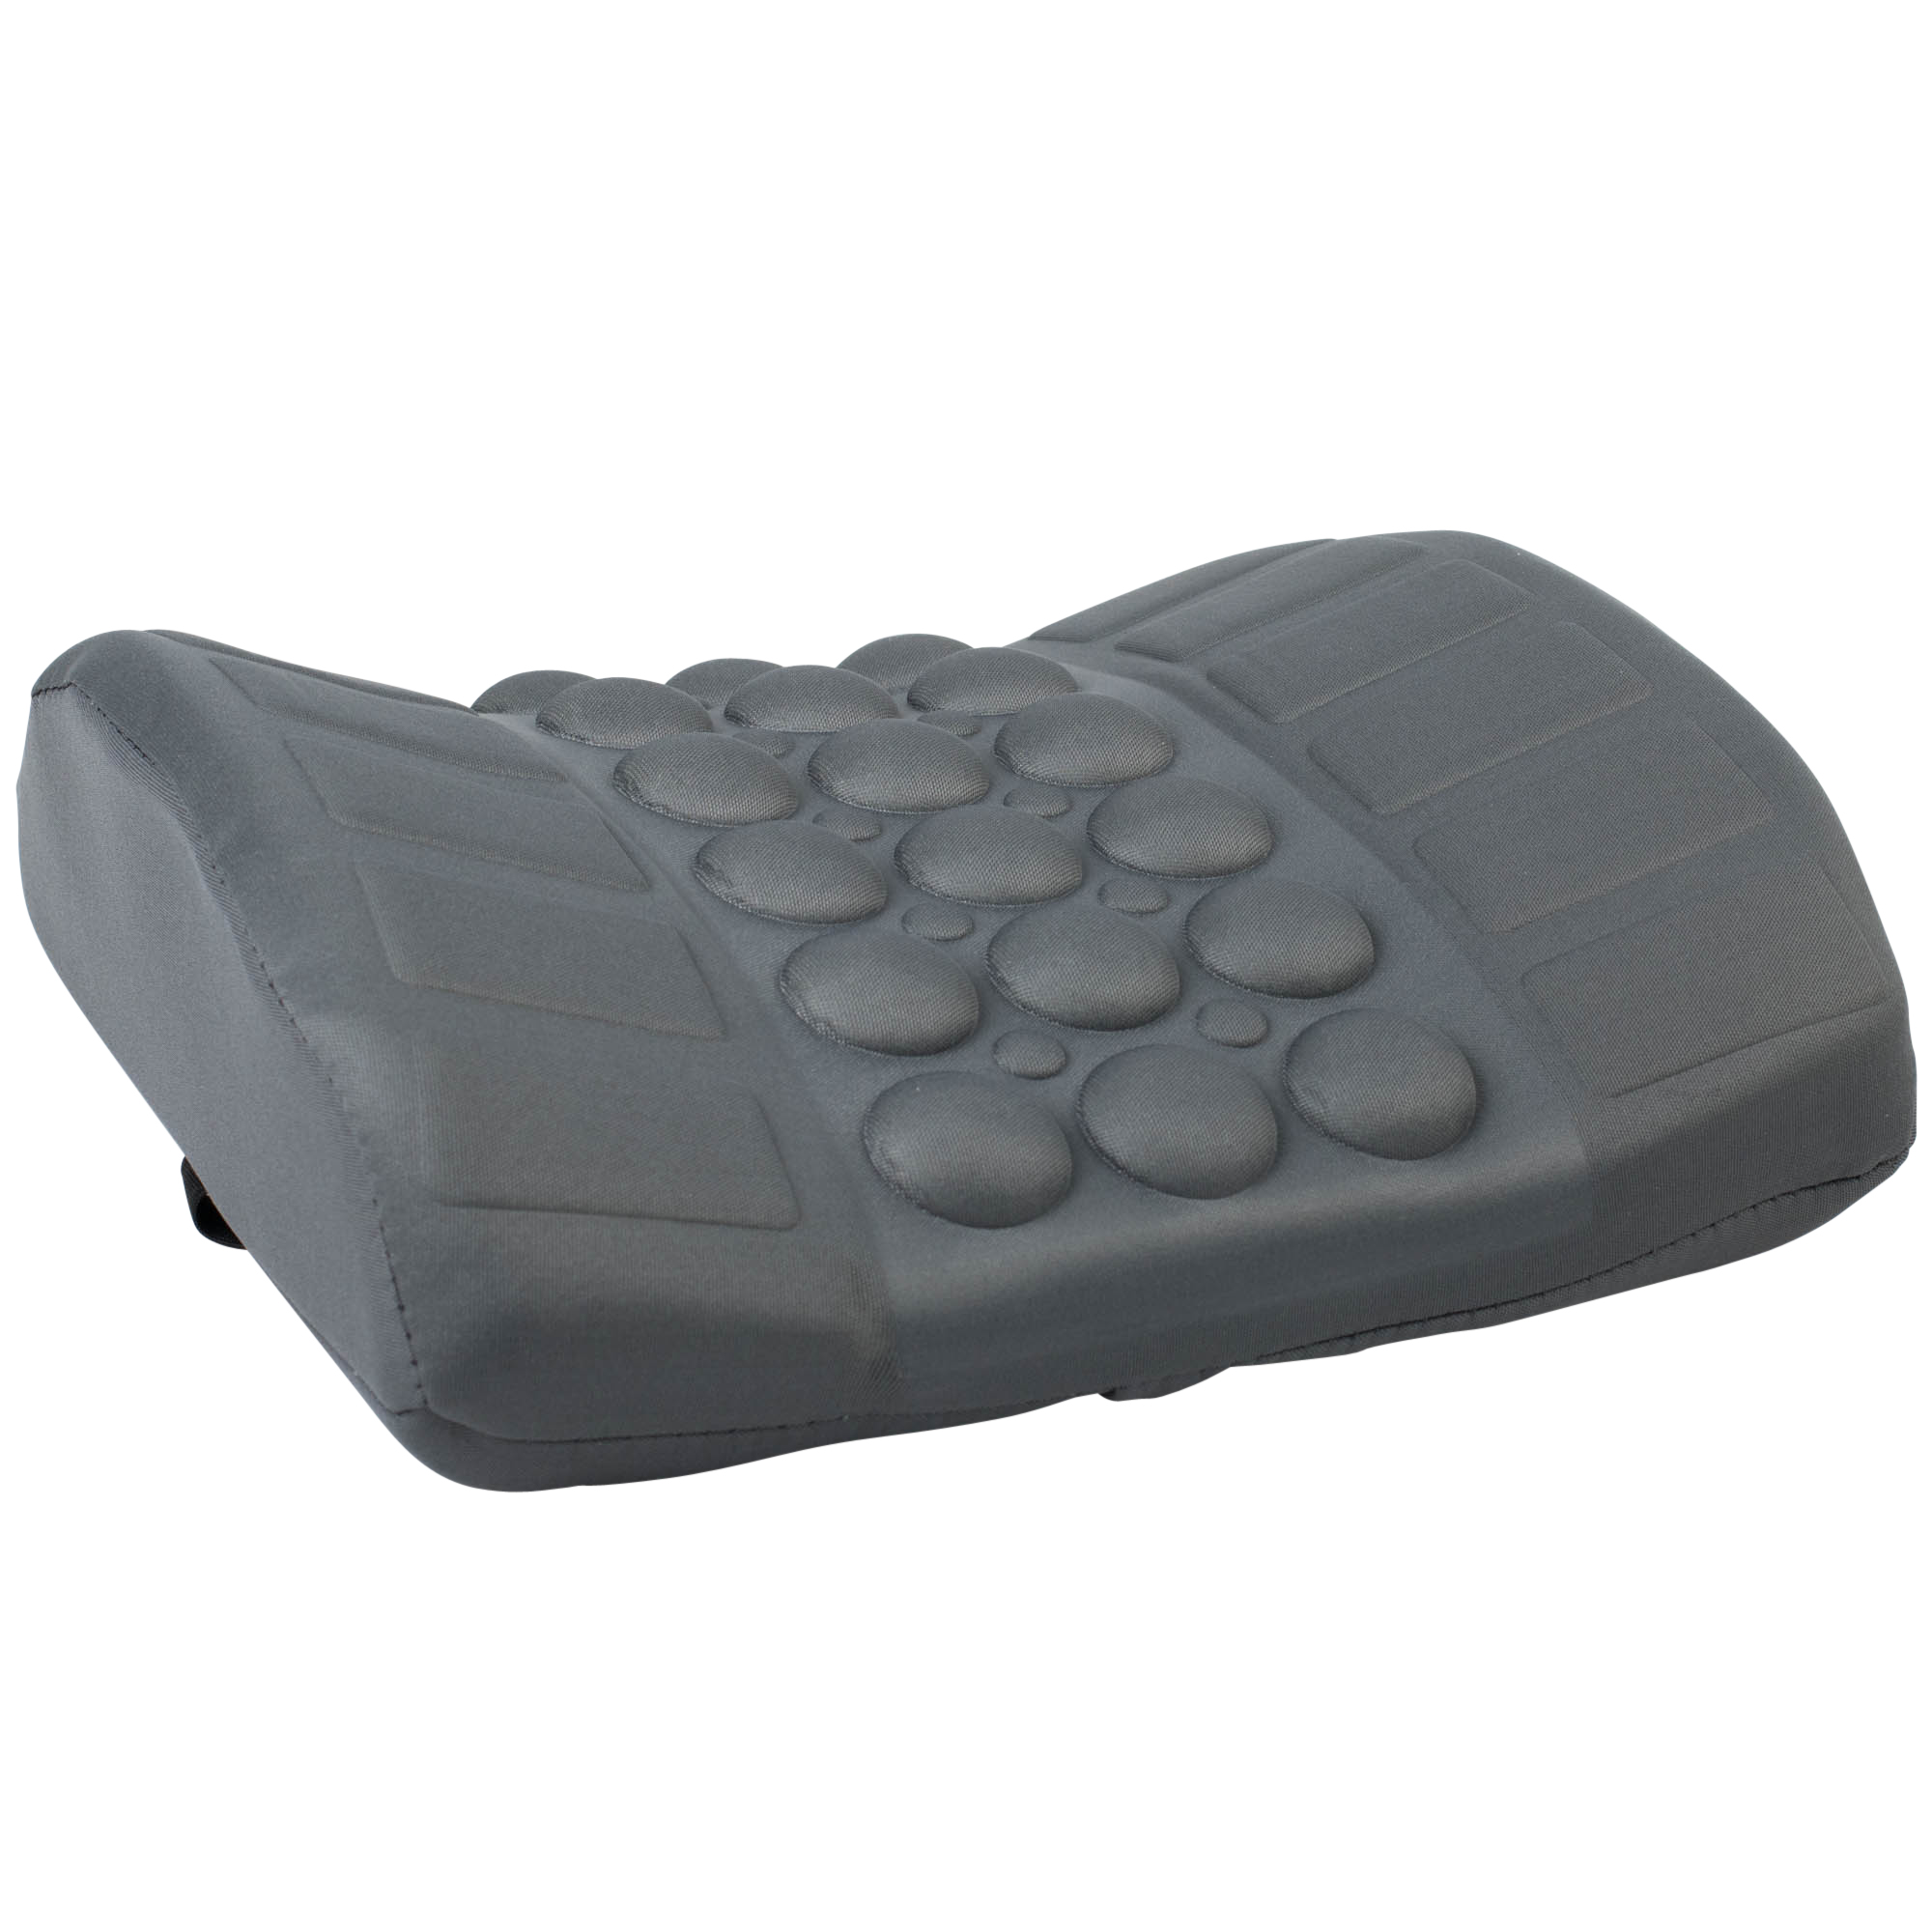 Lumbar Back Support Seat Cushion Ergonomic Car Office Home